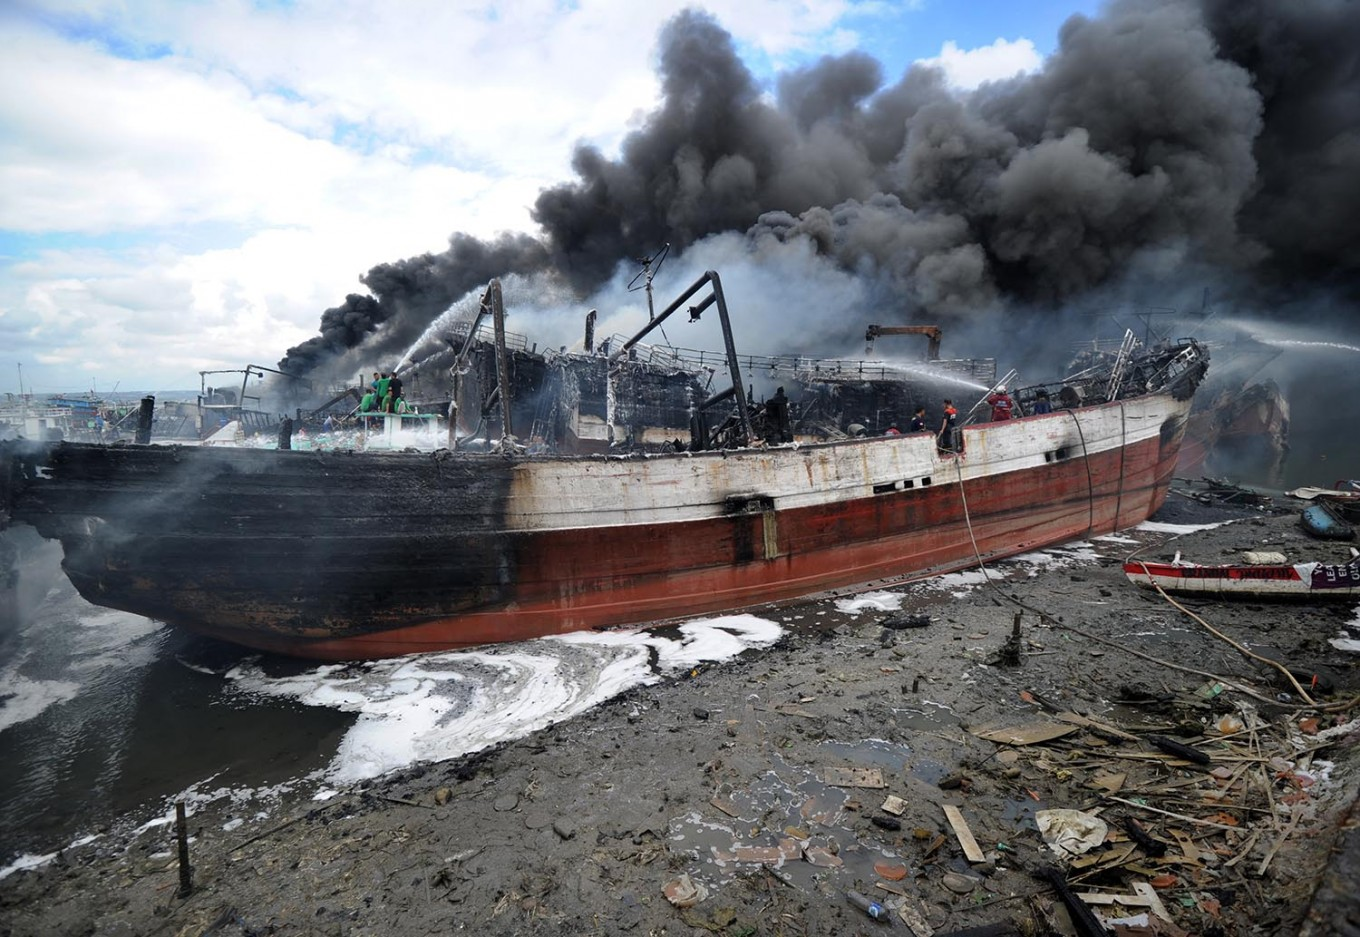 15 foreign tourists safe after motorboat catches fire in Komodo National Park